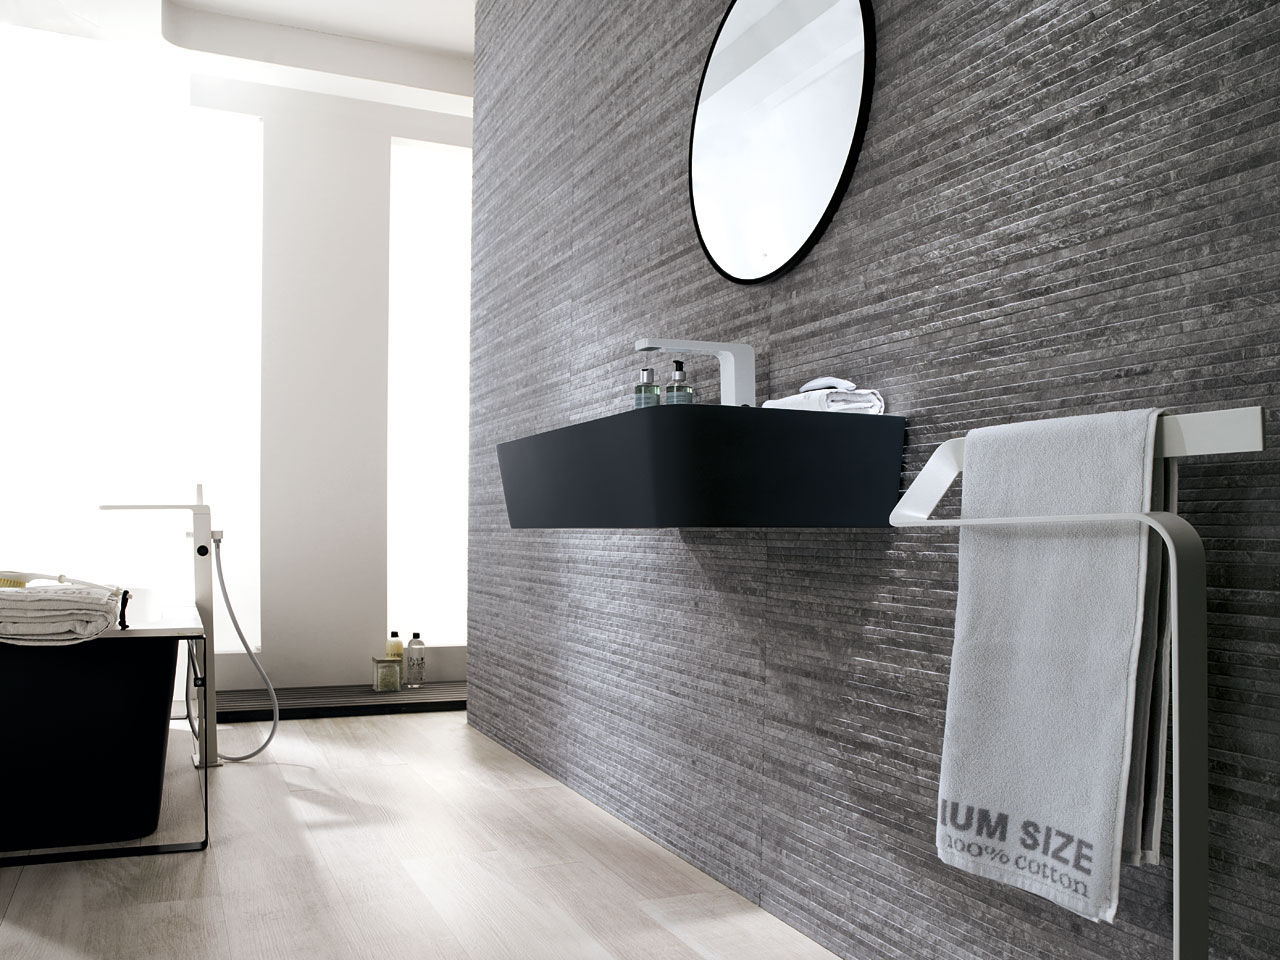 bathroom-tile-indoor-wall-ceramic-12-6406089